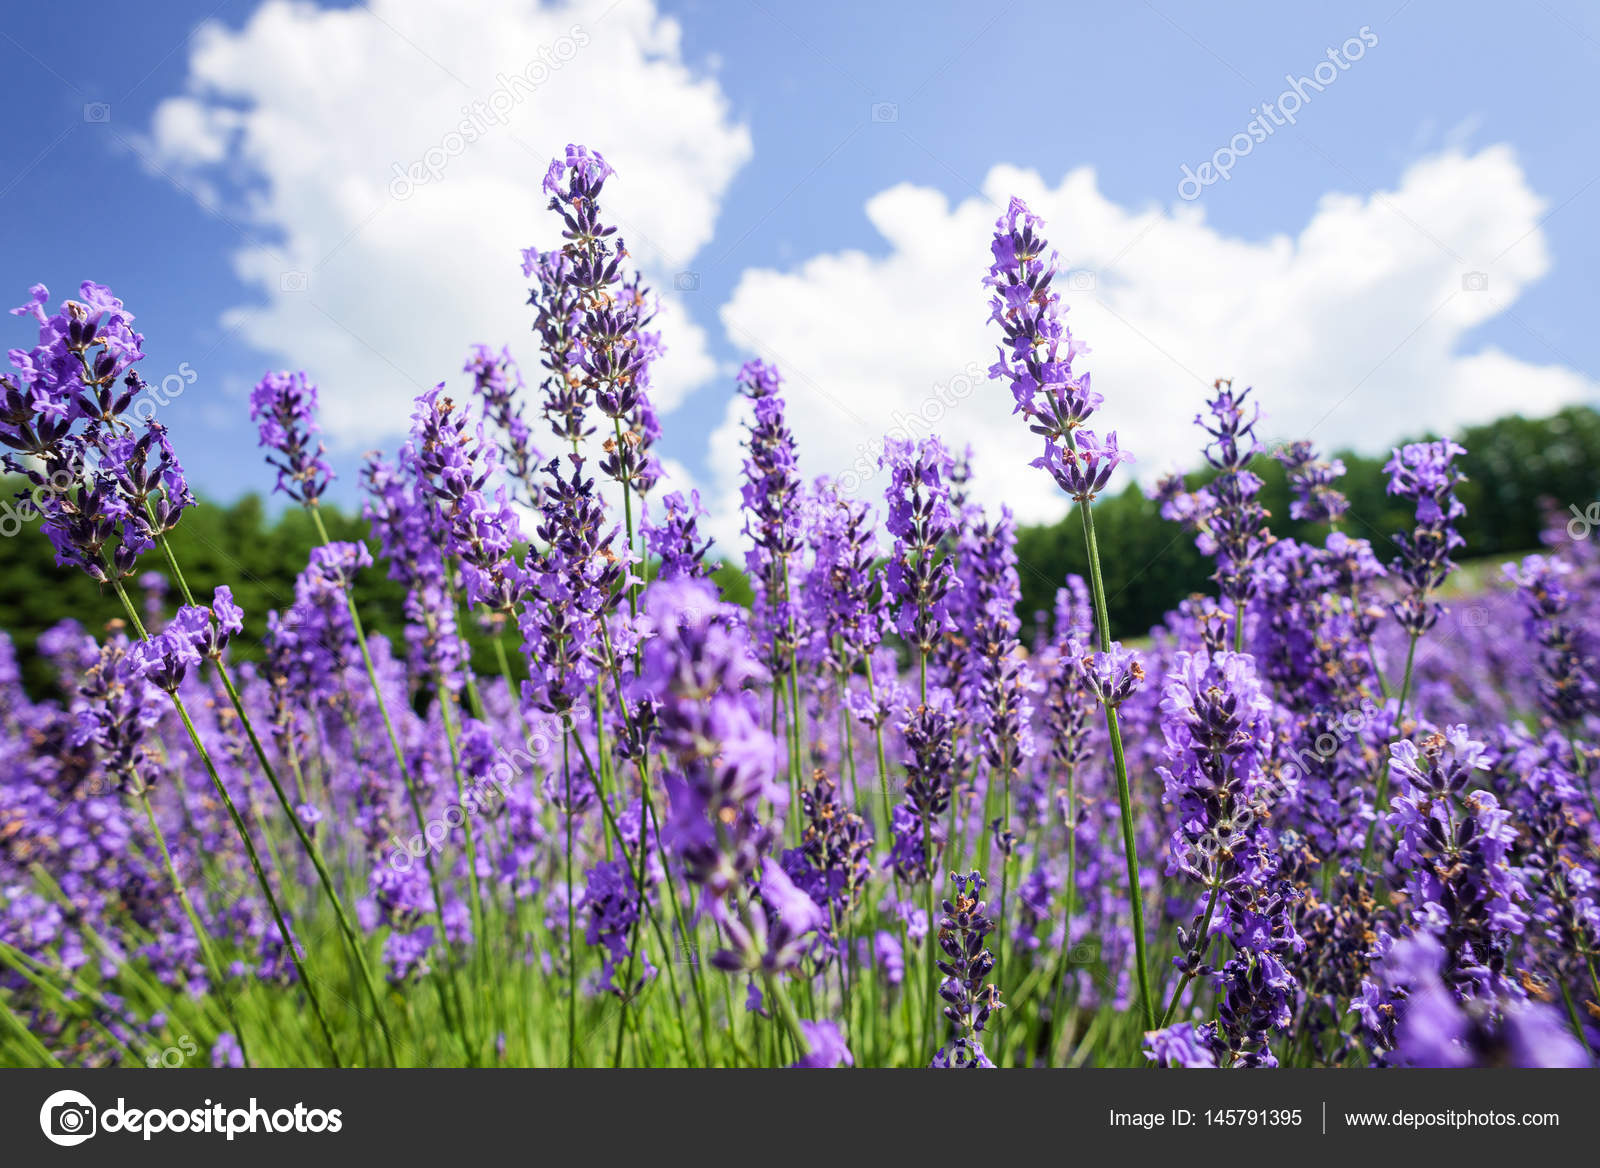 Beautiful lavender flowers stock photo norgallery 145791395 beautiful lavender flowers blossom in the garden photo by norgallery izmirmasajfo